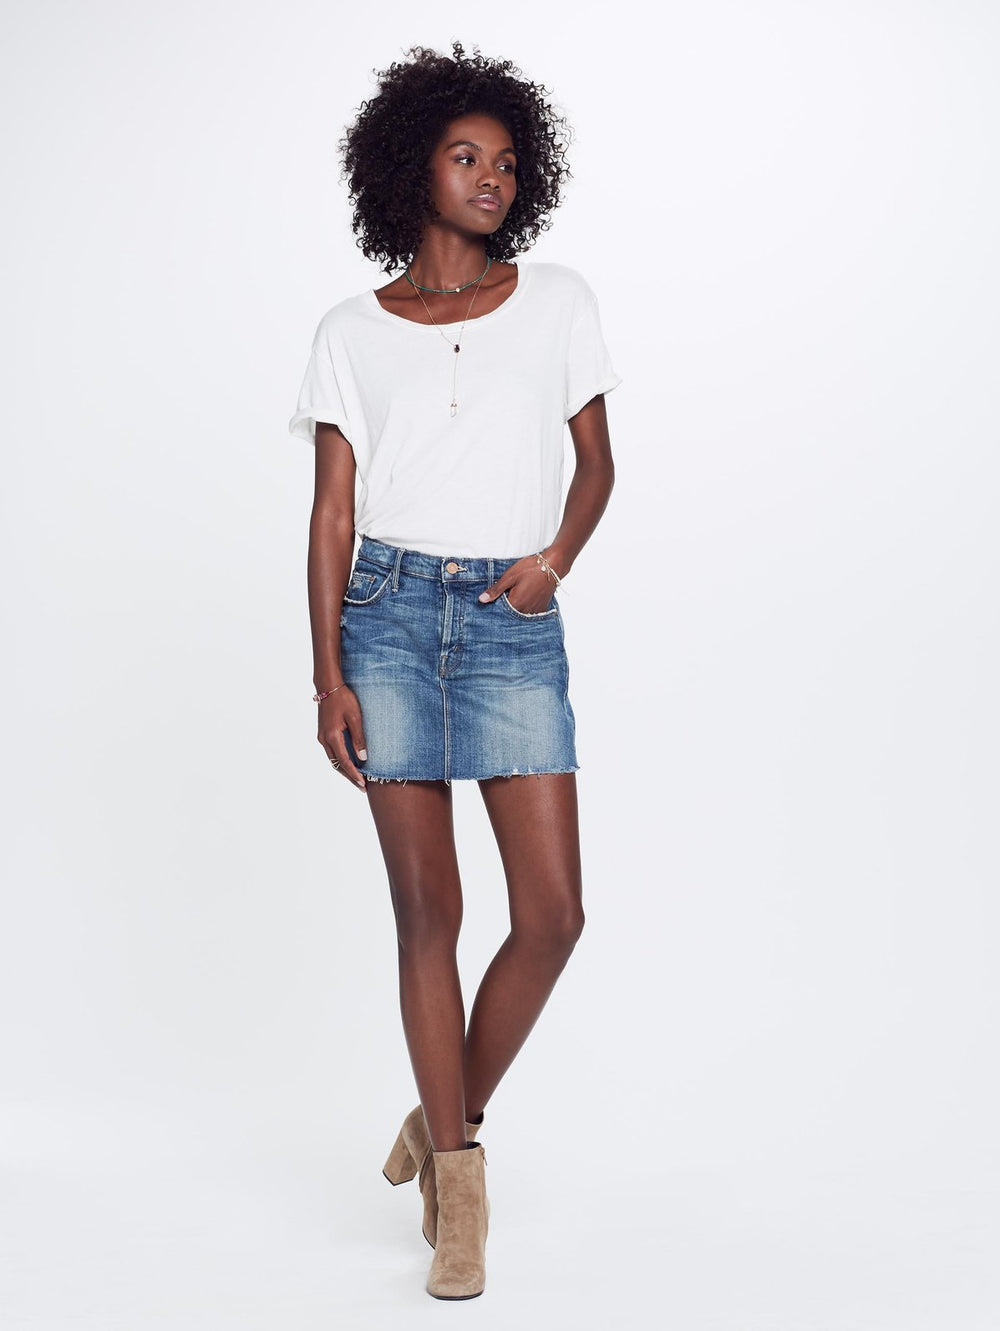 Vagabond Mini Skirt - Natural Born Trouble at Maximillia eBoutique.